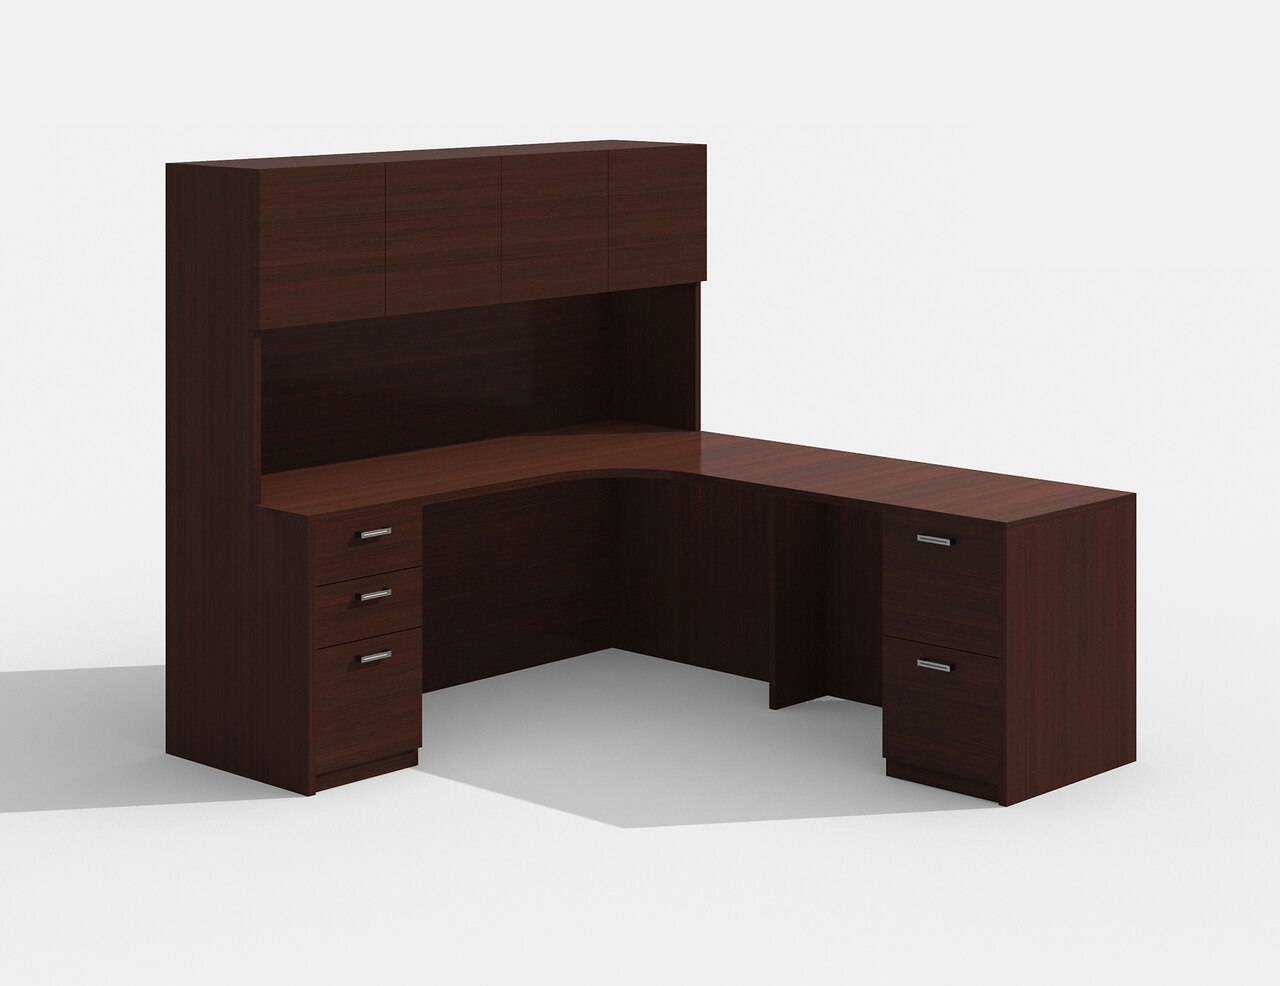 cherryman am-342 l desk with a426 hutch in mahogany